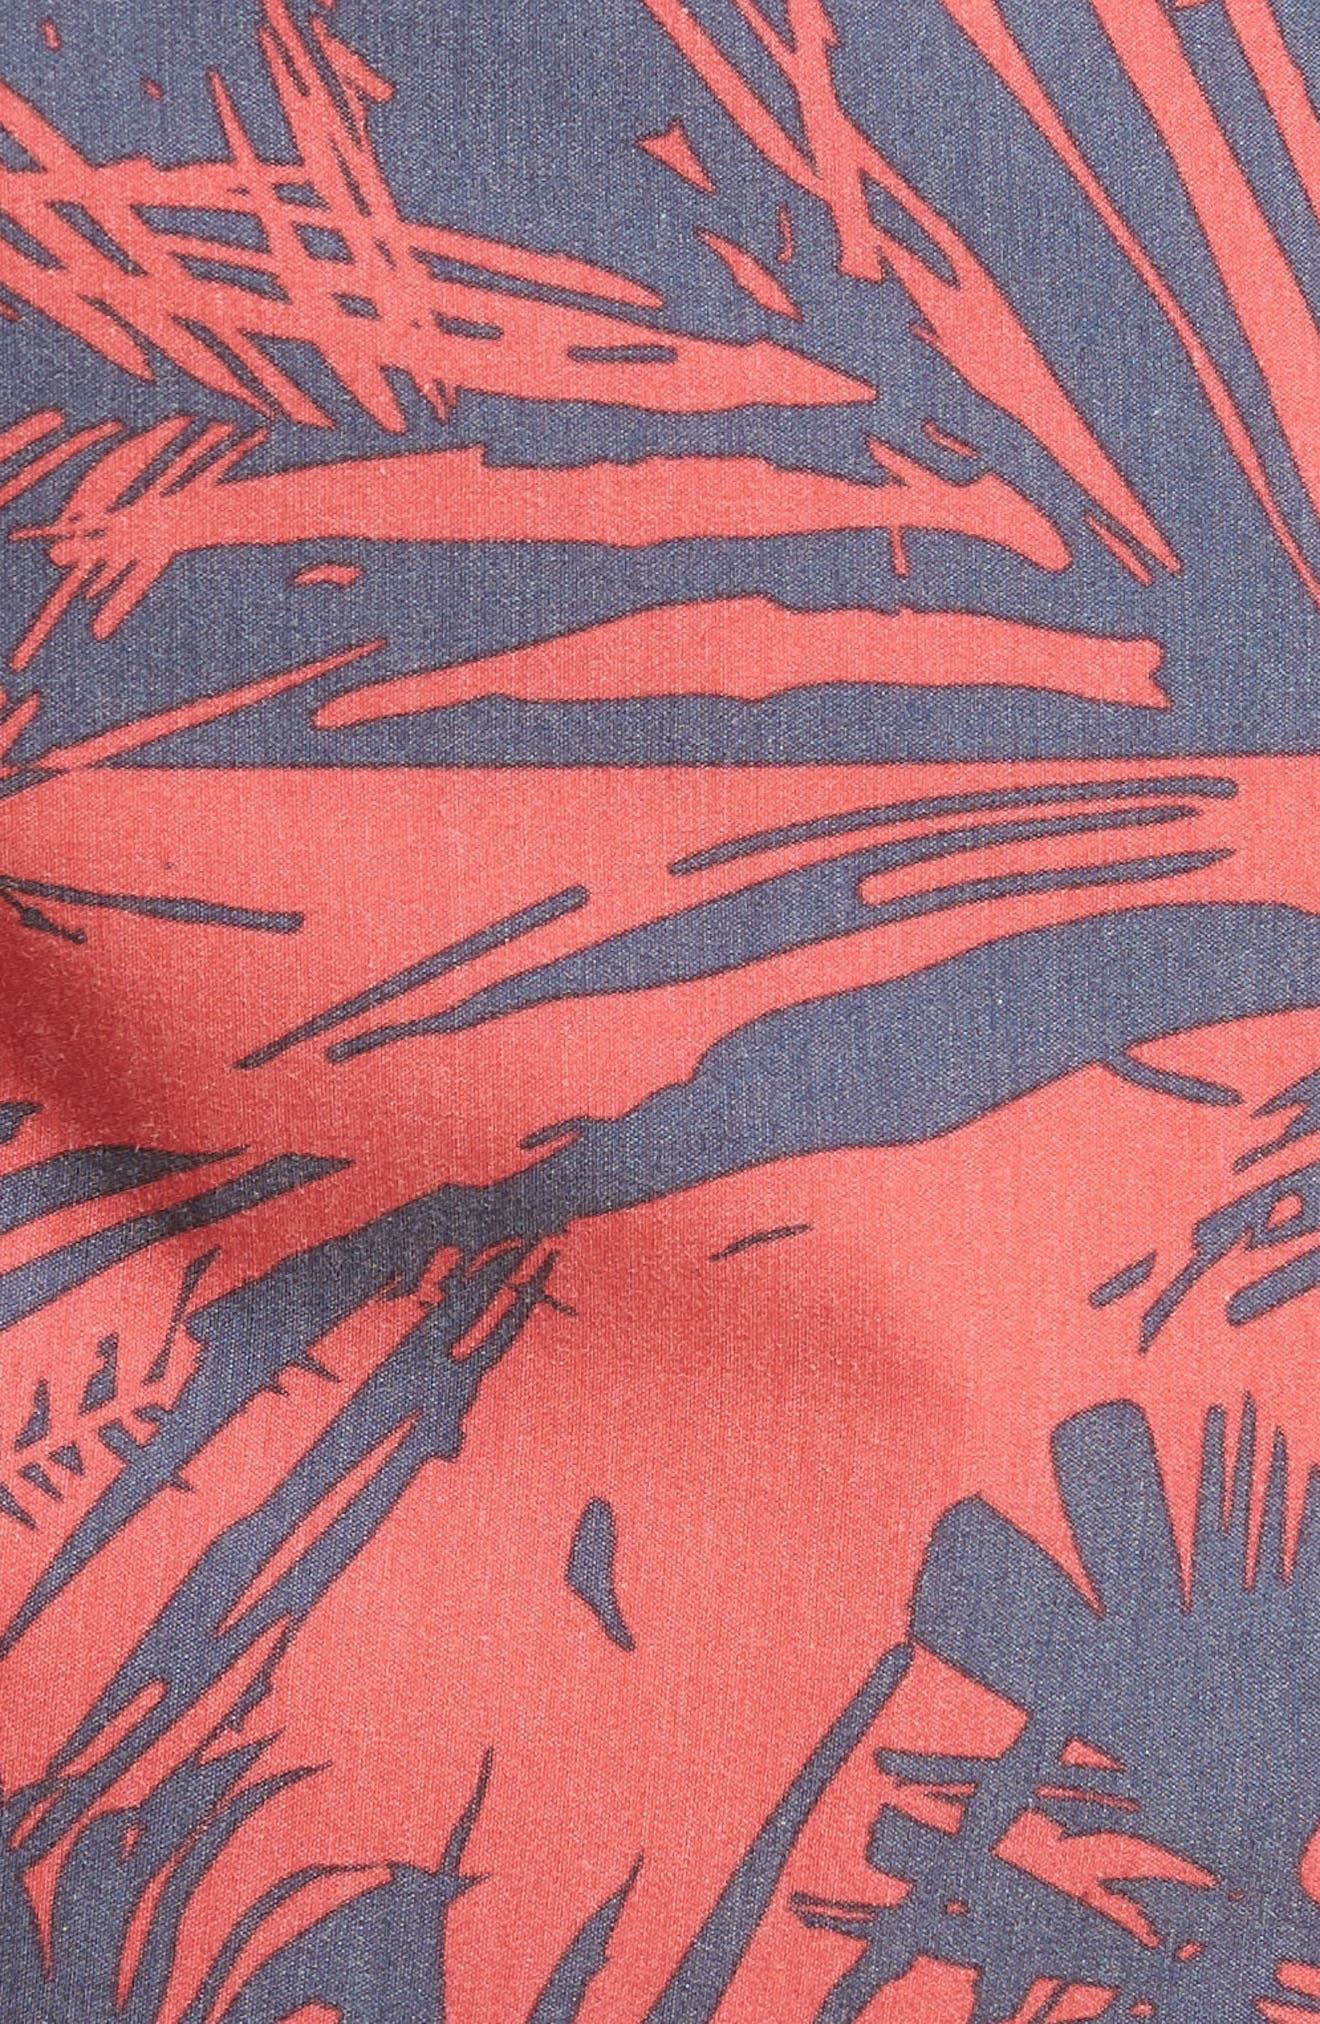 Inverted Cruzer Board Shorts,                             Alternate thumbnail 5, color,                             Faded Red